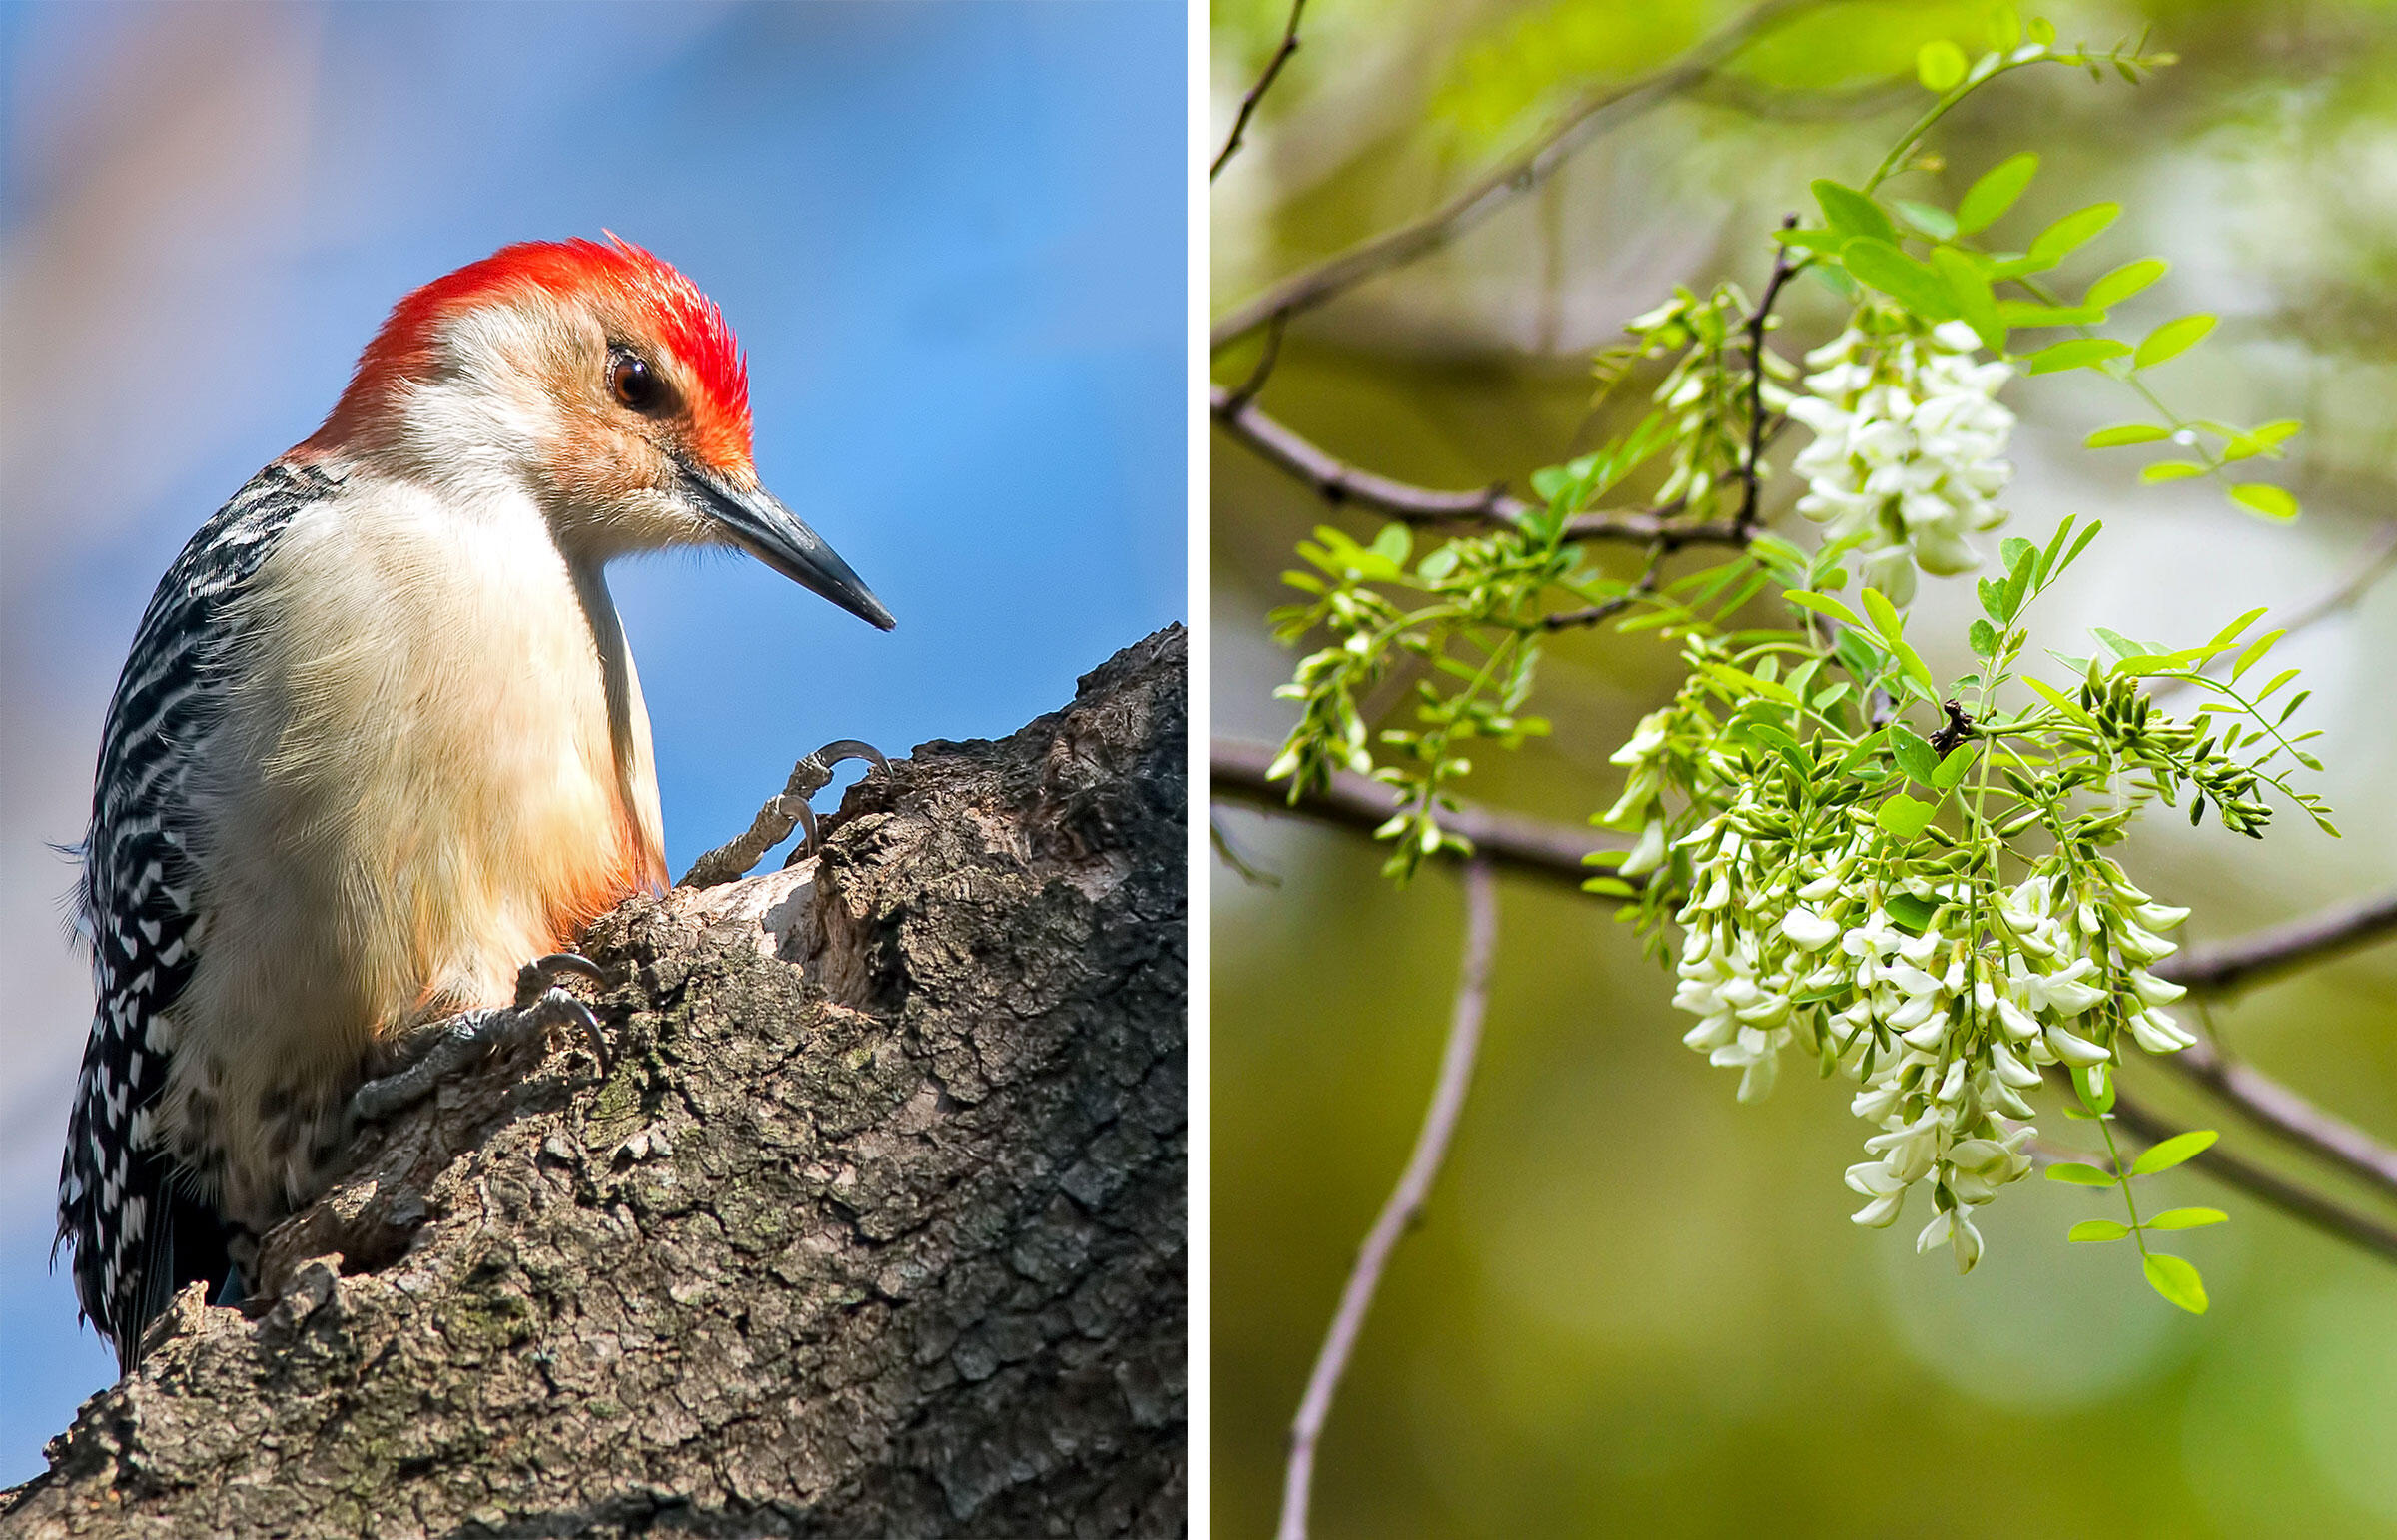 From left: Red-bellied Woodpecker. Photo: Brian Kushner; Black locust. Photo: Melissa McMasters/Flickr CC (BY 2.0)